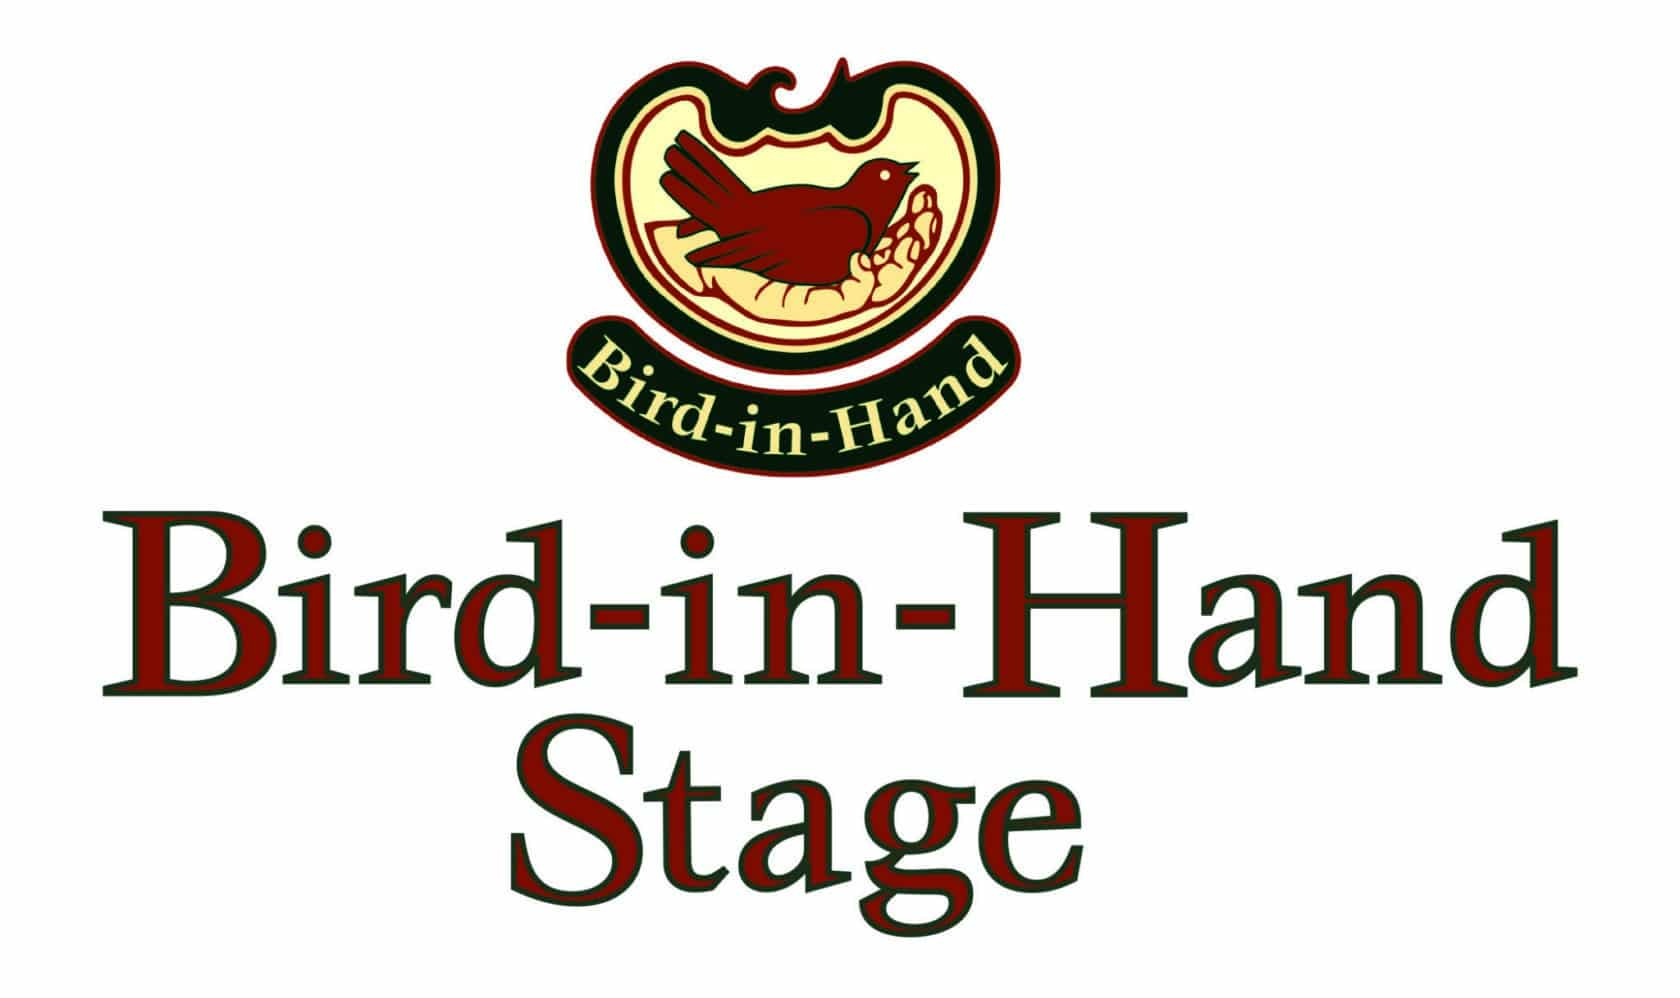 Bird-in-hand Stage